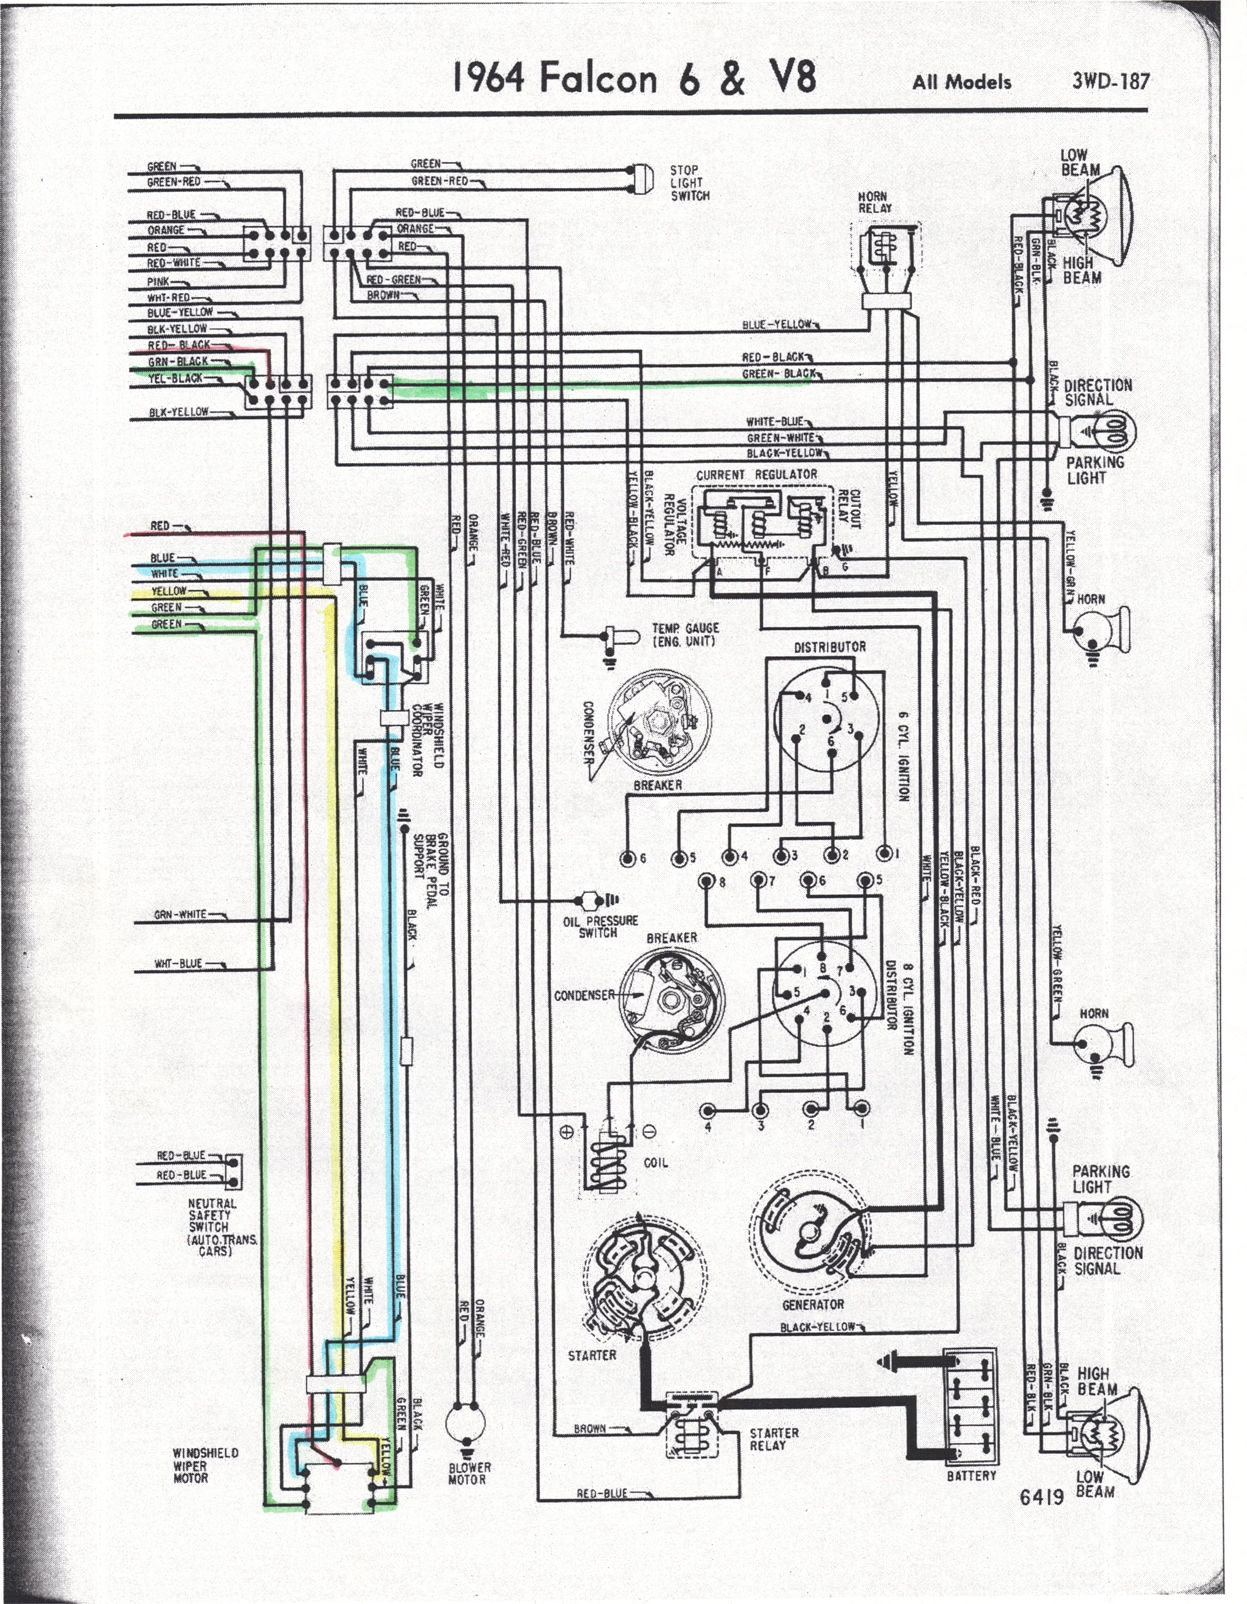 Ford Ranchero Wiring Diagrams on 1970 ford ranchero suspension, 1971 ford mustang wiring diagram, 1970 chevy nova wiring diagram, 1970 chevrolet chevelle wiring diagram, 1970 plymouth gtx wiring diagram, 1970 pontiac grand prix wiring diagram, 1978 ford bronco wiring diagram, 1970 buick skylark wiring diagram, 1970 ford ranchero wheels, 1970 plymouth barracuda wiring diagram, 1970 mercury cougar wiring diagram, 1970 dodge challenger wiring diagram, 1972 ford gran torino wiring diagram, 1970 dodge a100 wiring diagram, 1970 ford ranchero seats, 1970 chrysler 300 wiring diagram, 1970 ford ranchero brochure, 1970 pontiac lemans wiring diagram, 1970 mercury montego wiring diagram, 1970 ford ranchero parts,